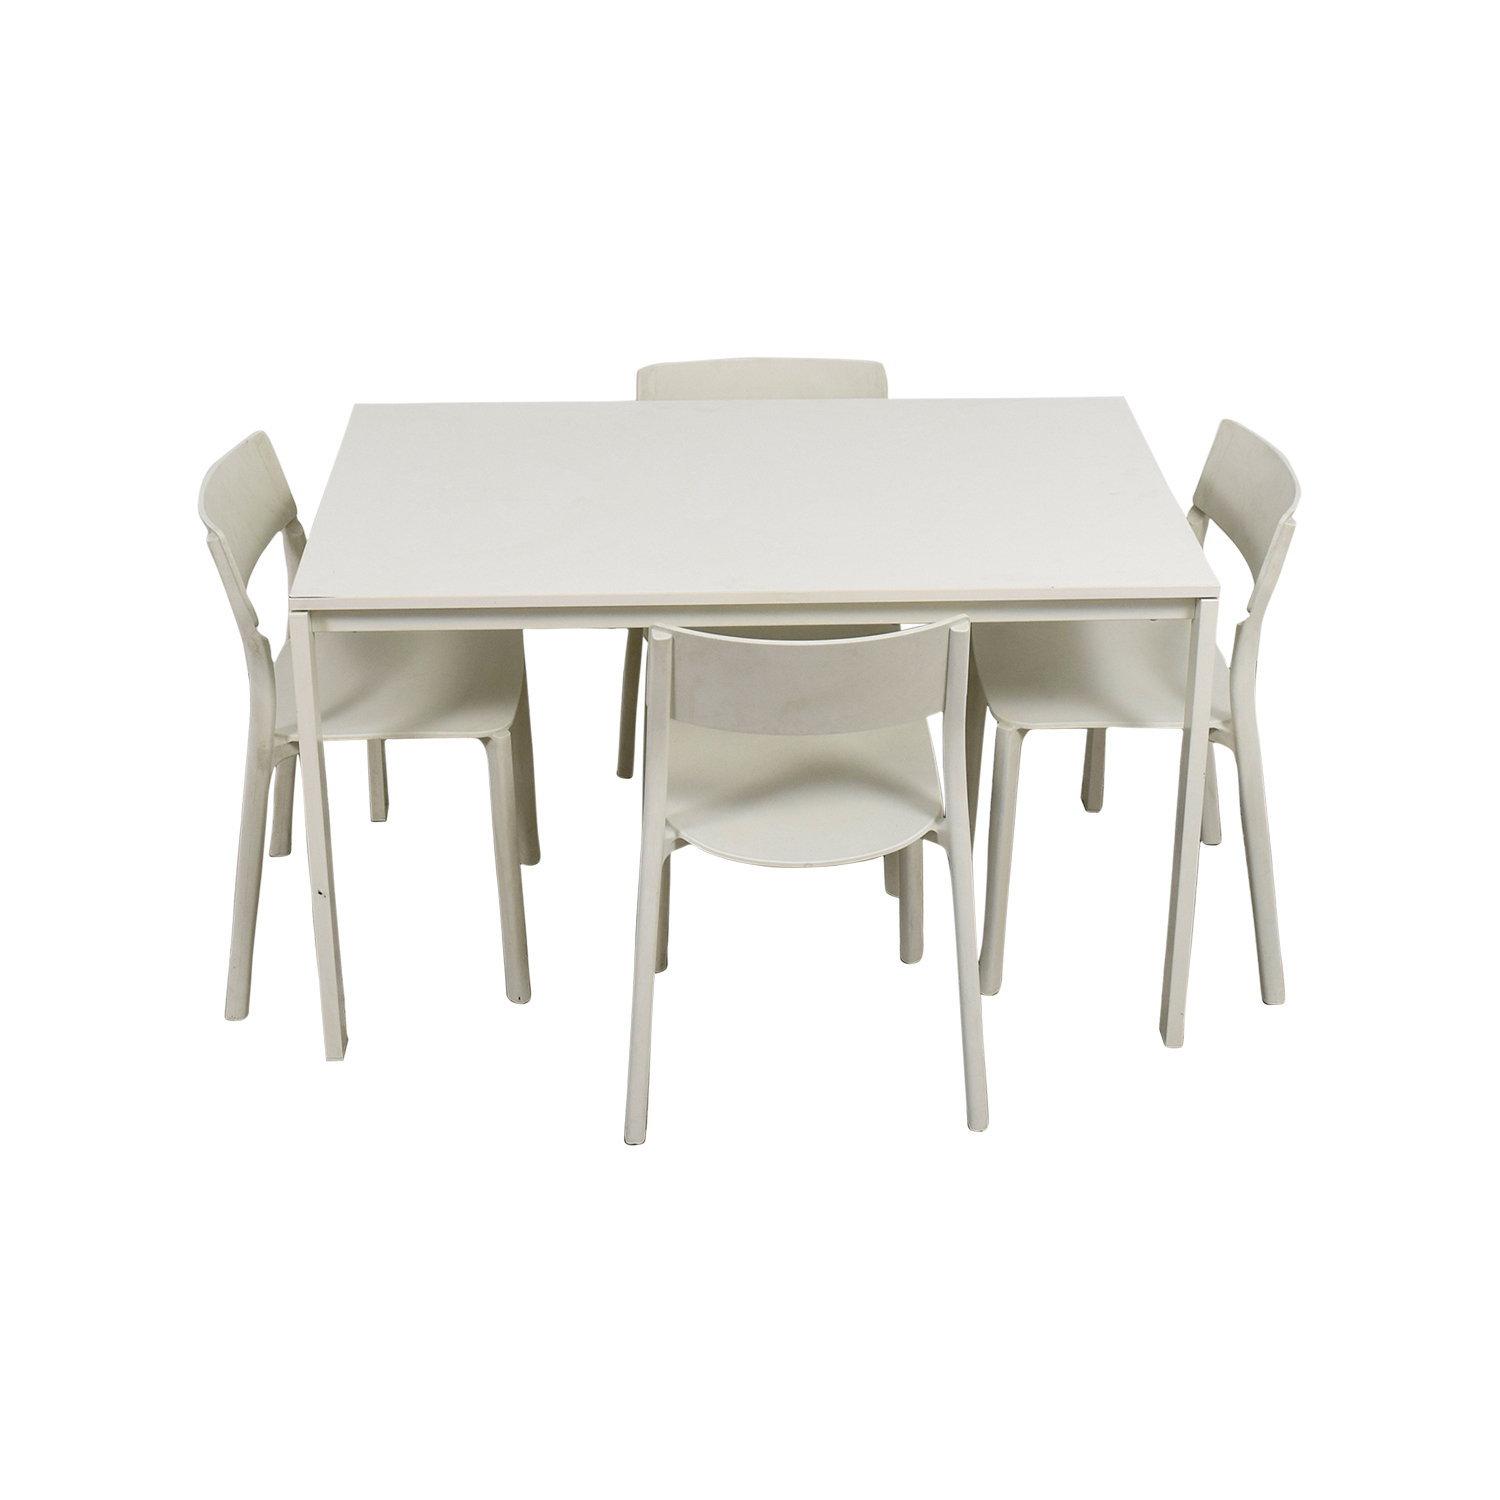 used kitchen chairs modern white dining sets for sale